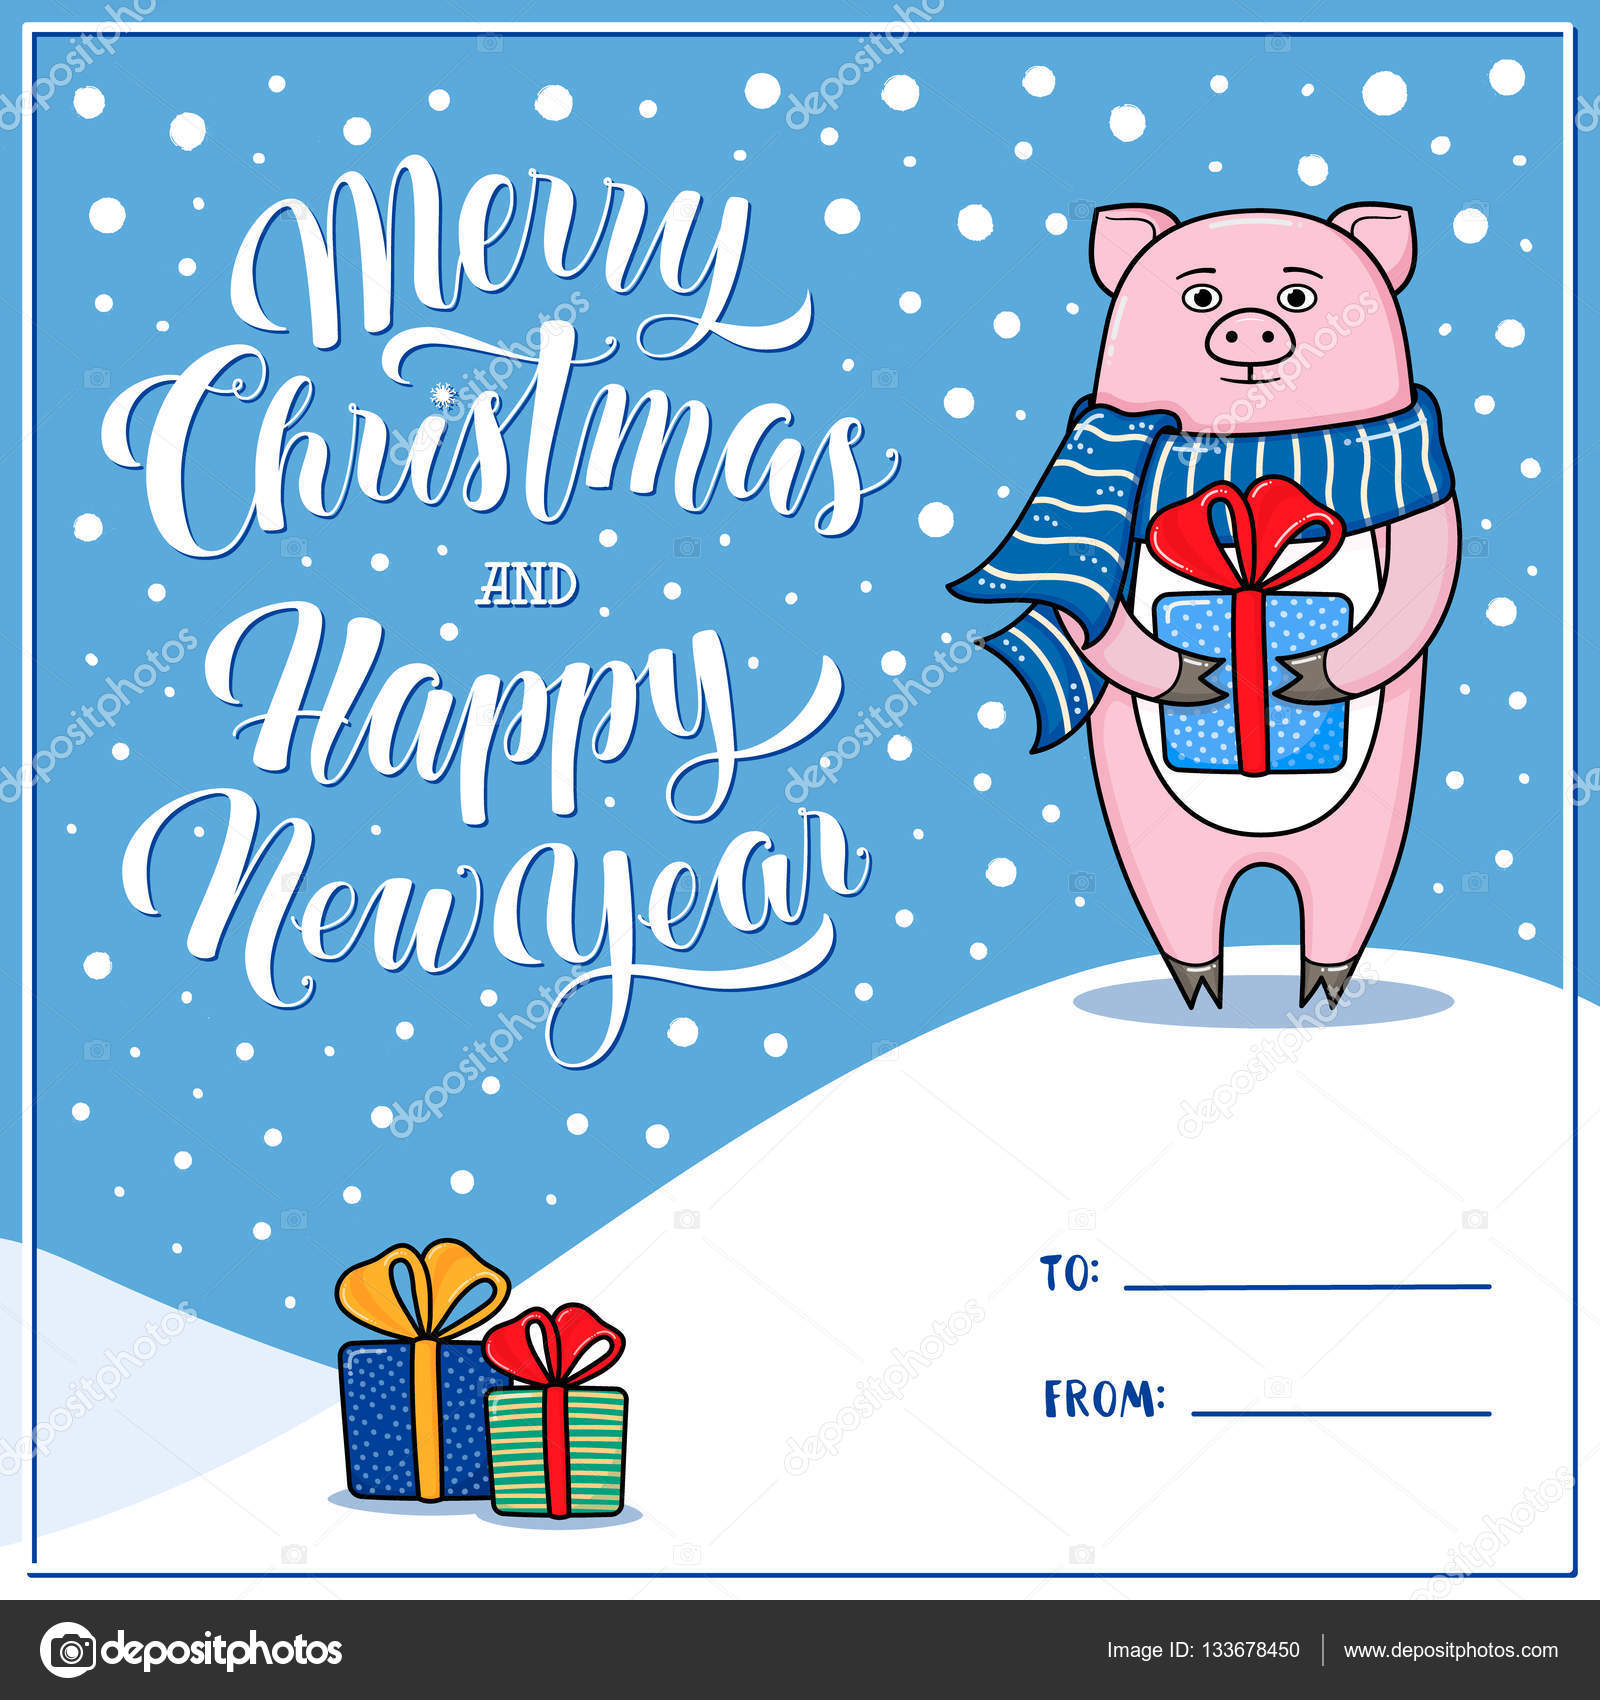 Merry Christmas And Happy New Year Greeting Card With Pig Stock